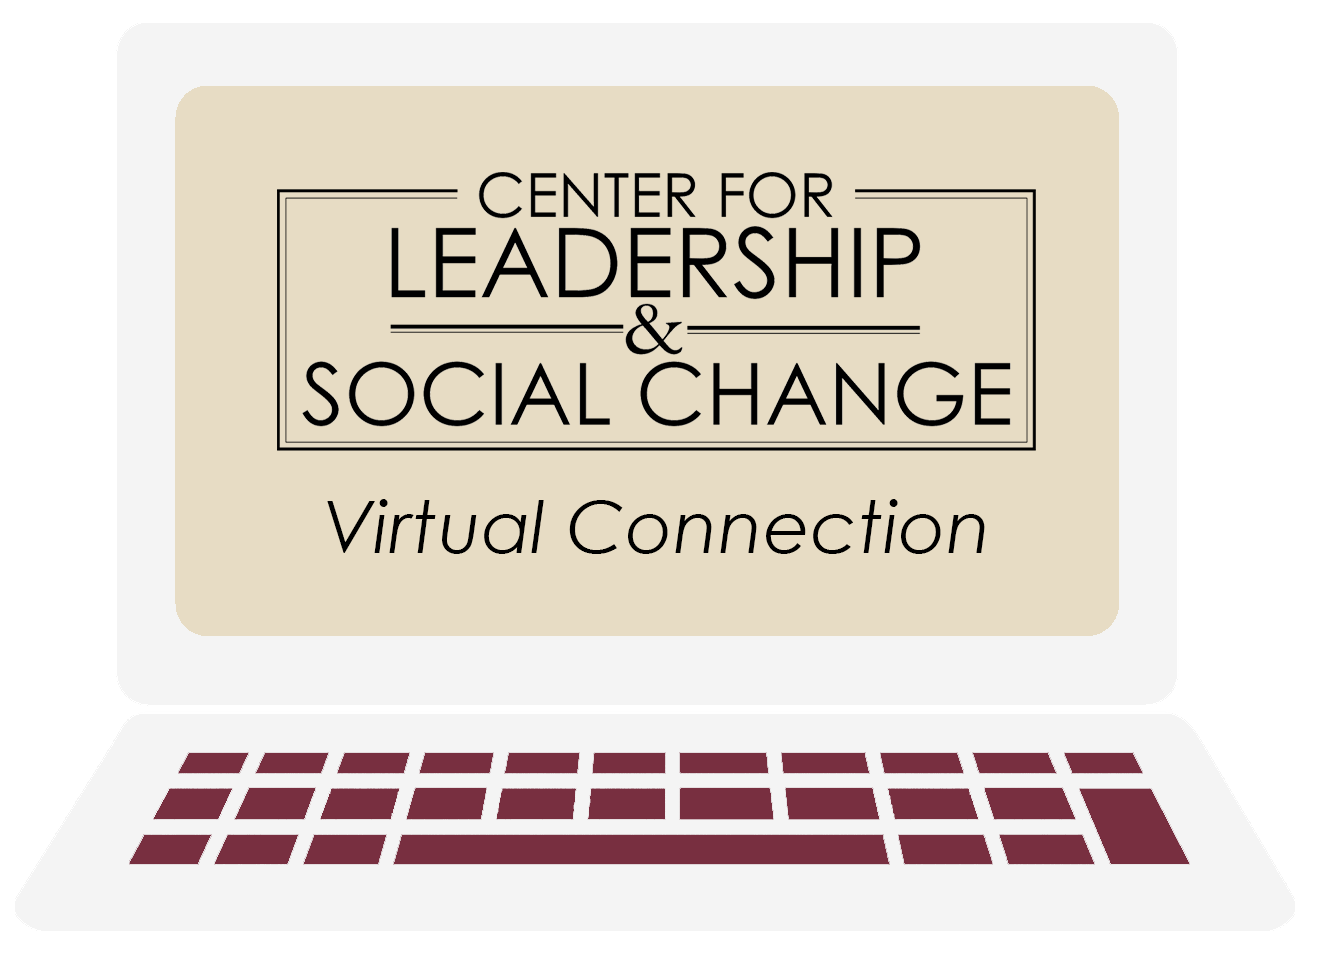 Garnet and gold laptop reading Center for Leadership & Social Change Virtual Connection on the screen